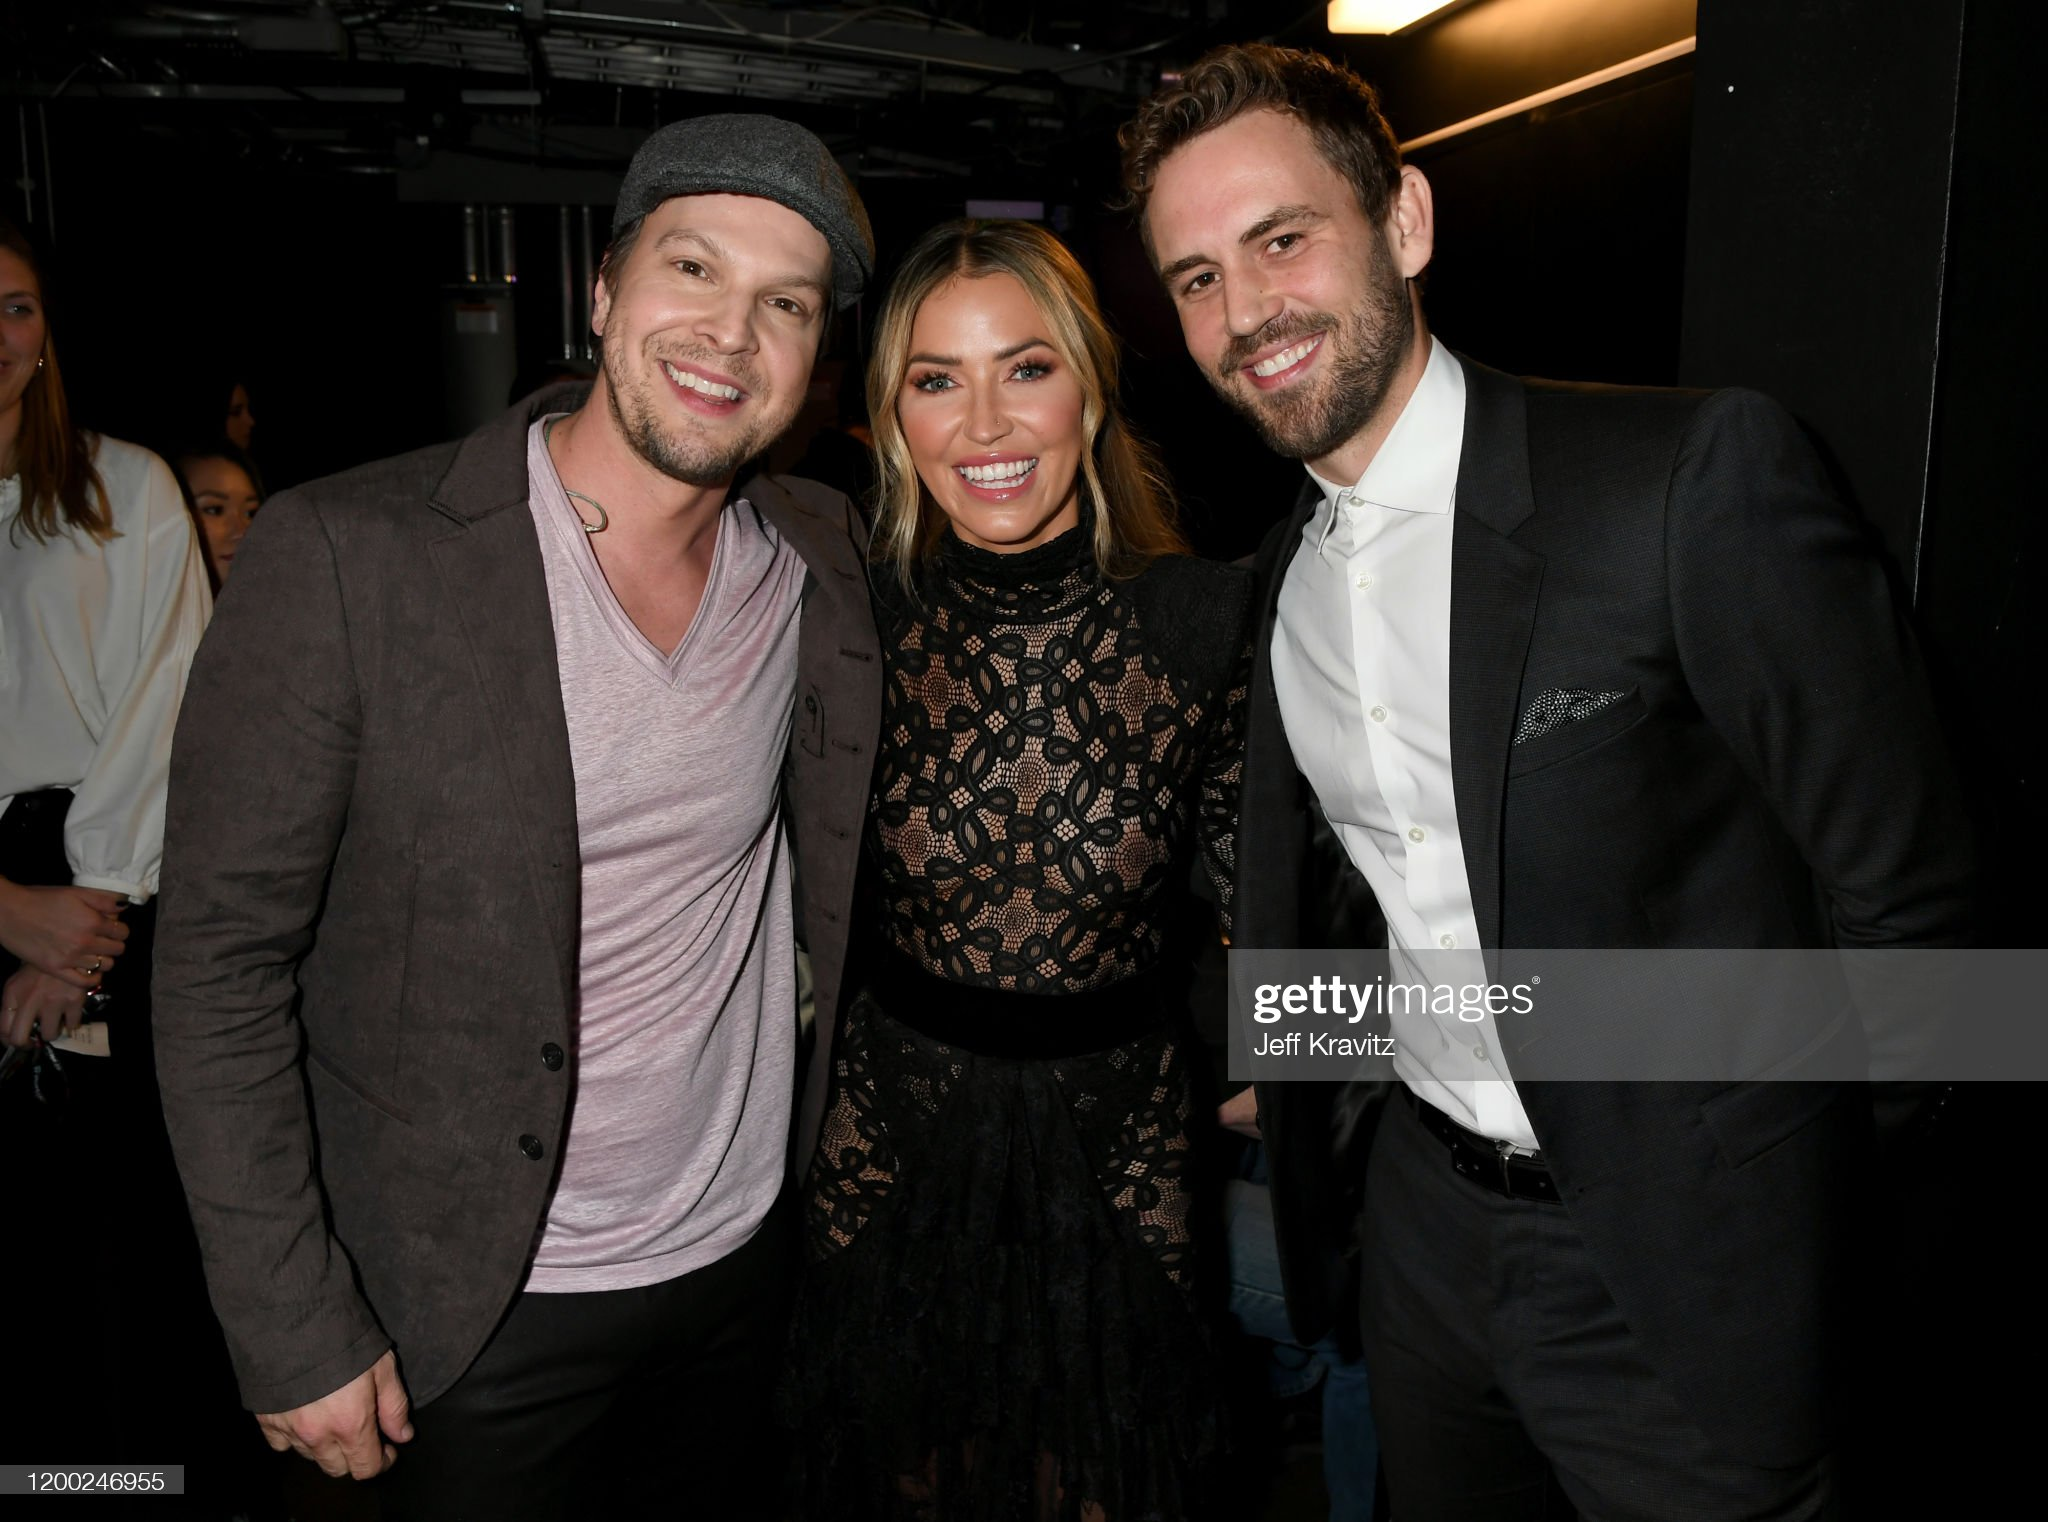 Kaitlyn Bristowe - Jason Tartick - FAN Forum - Discussion  - Page 51 Gavin-degraw-kaitlyn-bristowe-and-nick-viall-attend-the-2020-podcast-picture-id1200246955?s=2048x2048